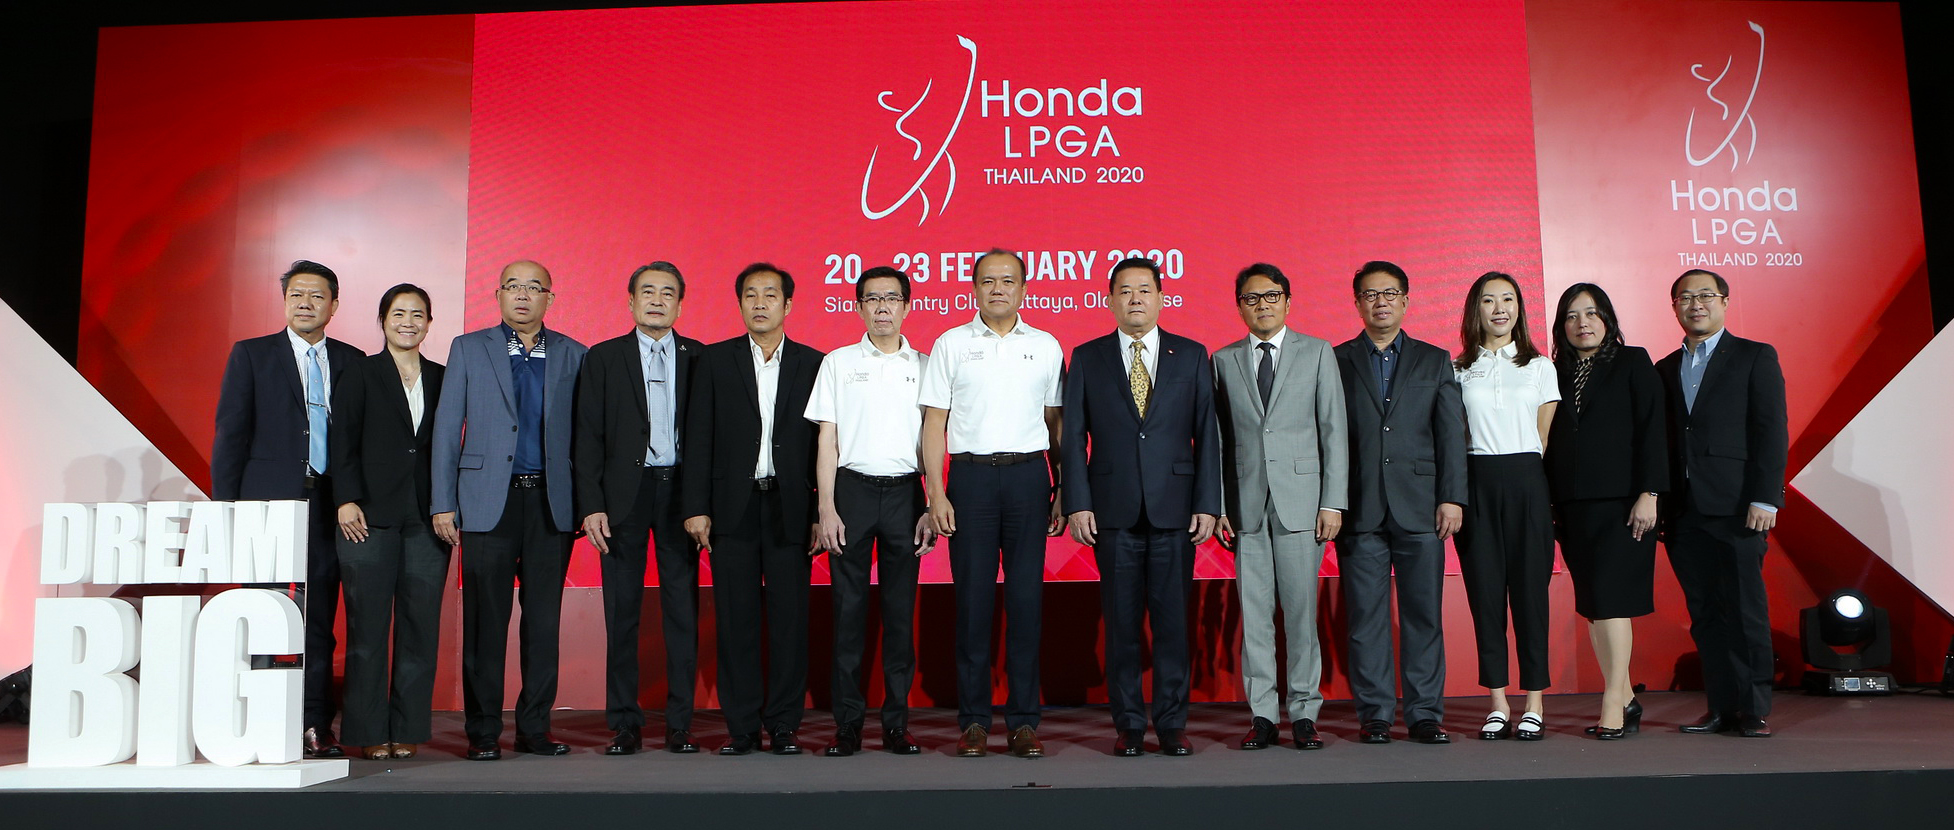 Honda LPGA Thailand 2020 set to enthrall audiences once again